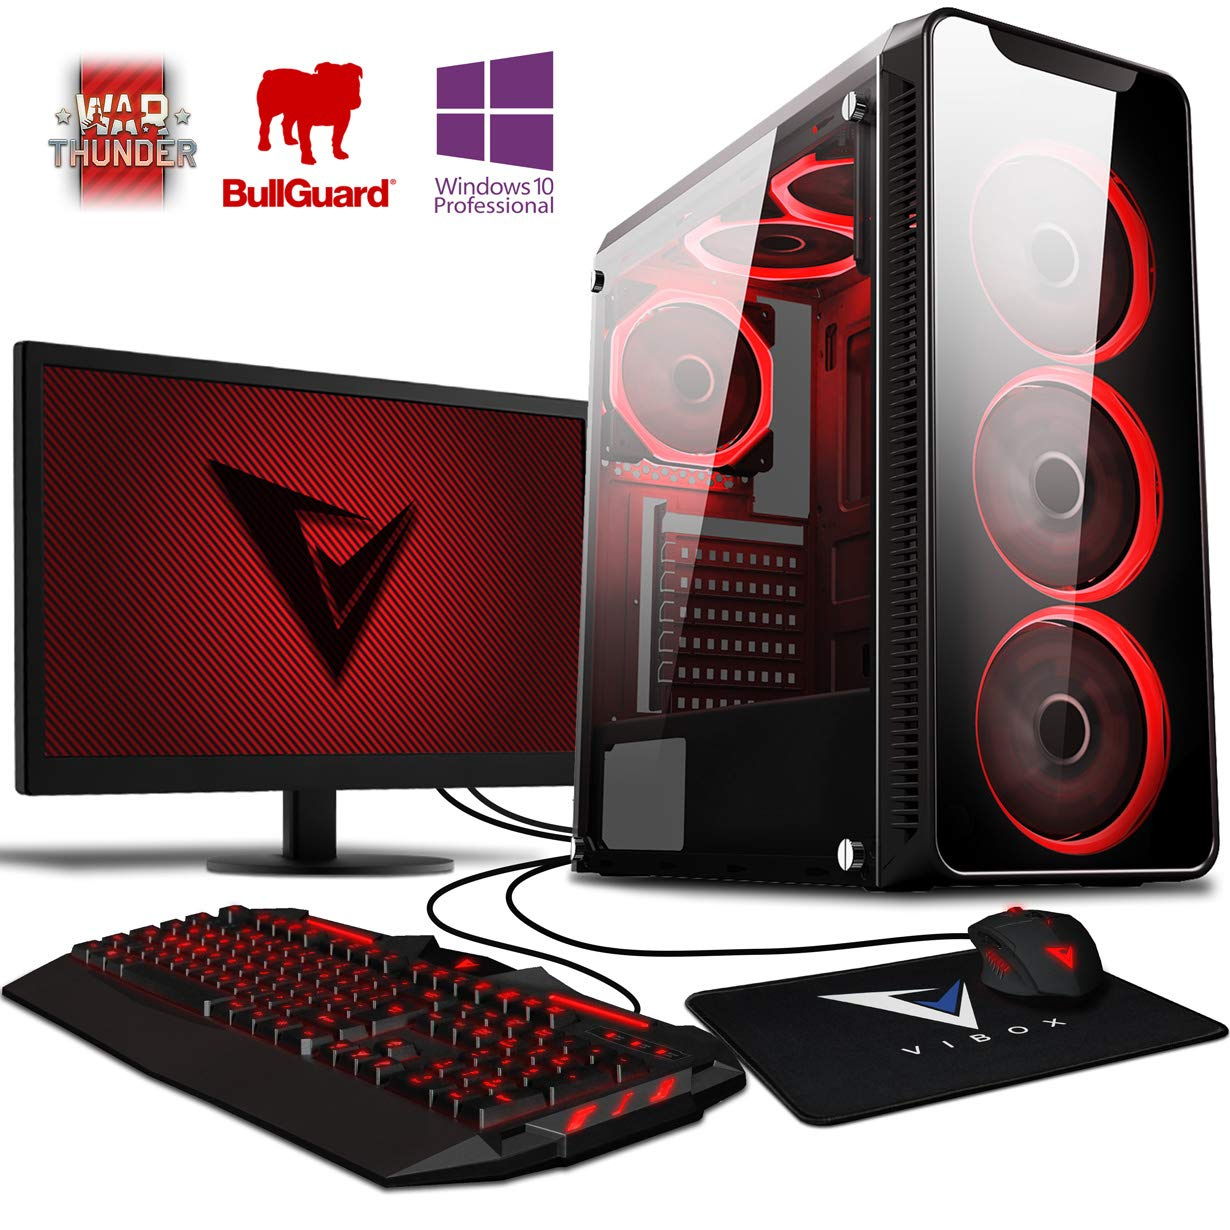 TALLA 32GB RAM, 2TB HDD, Windows 10 Pro. Vibox Precision 6XLW - Ordenador de sobremesa (AMD FX-4300, 32 GB de RAM, 2000 GB, Nvidia GT 730, Windows 10), color negro - kit con Monitor de 22